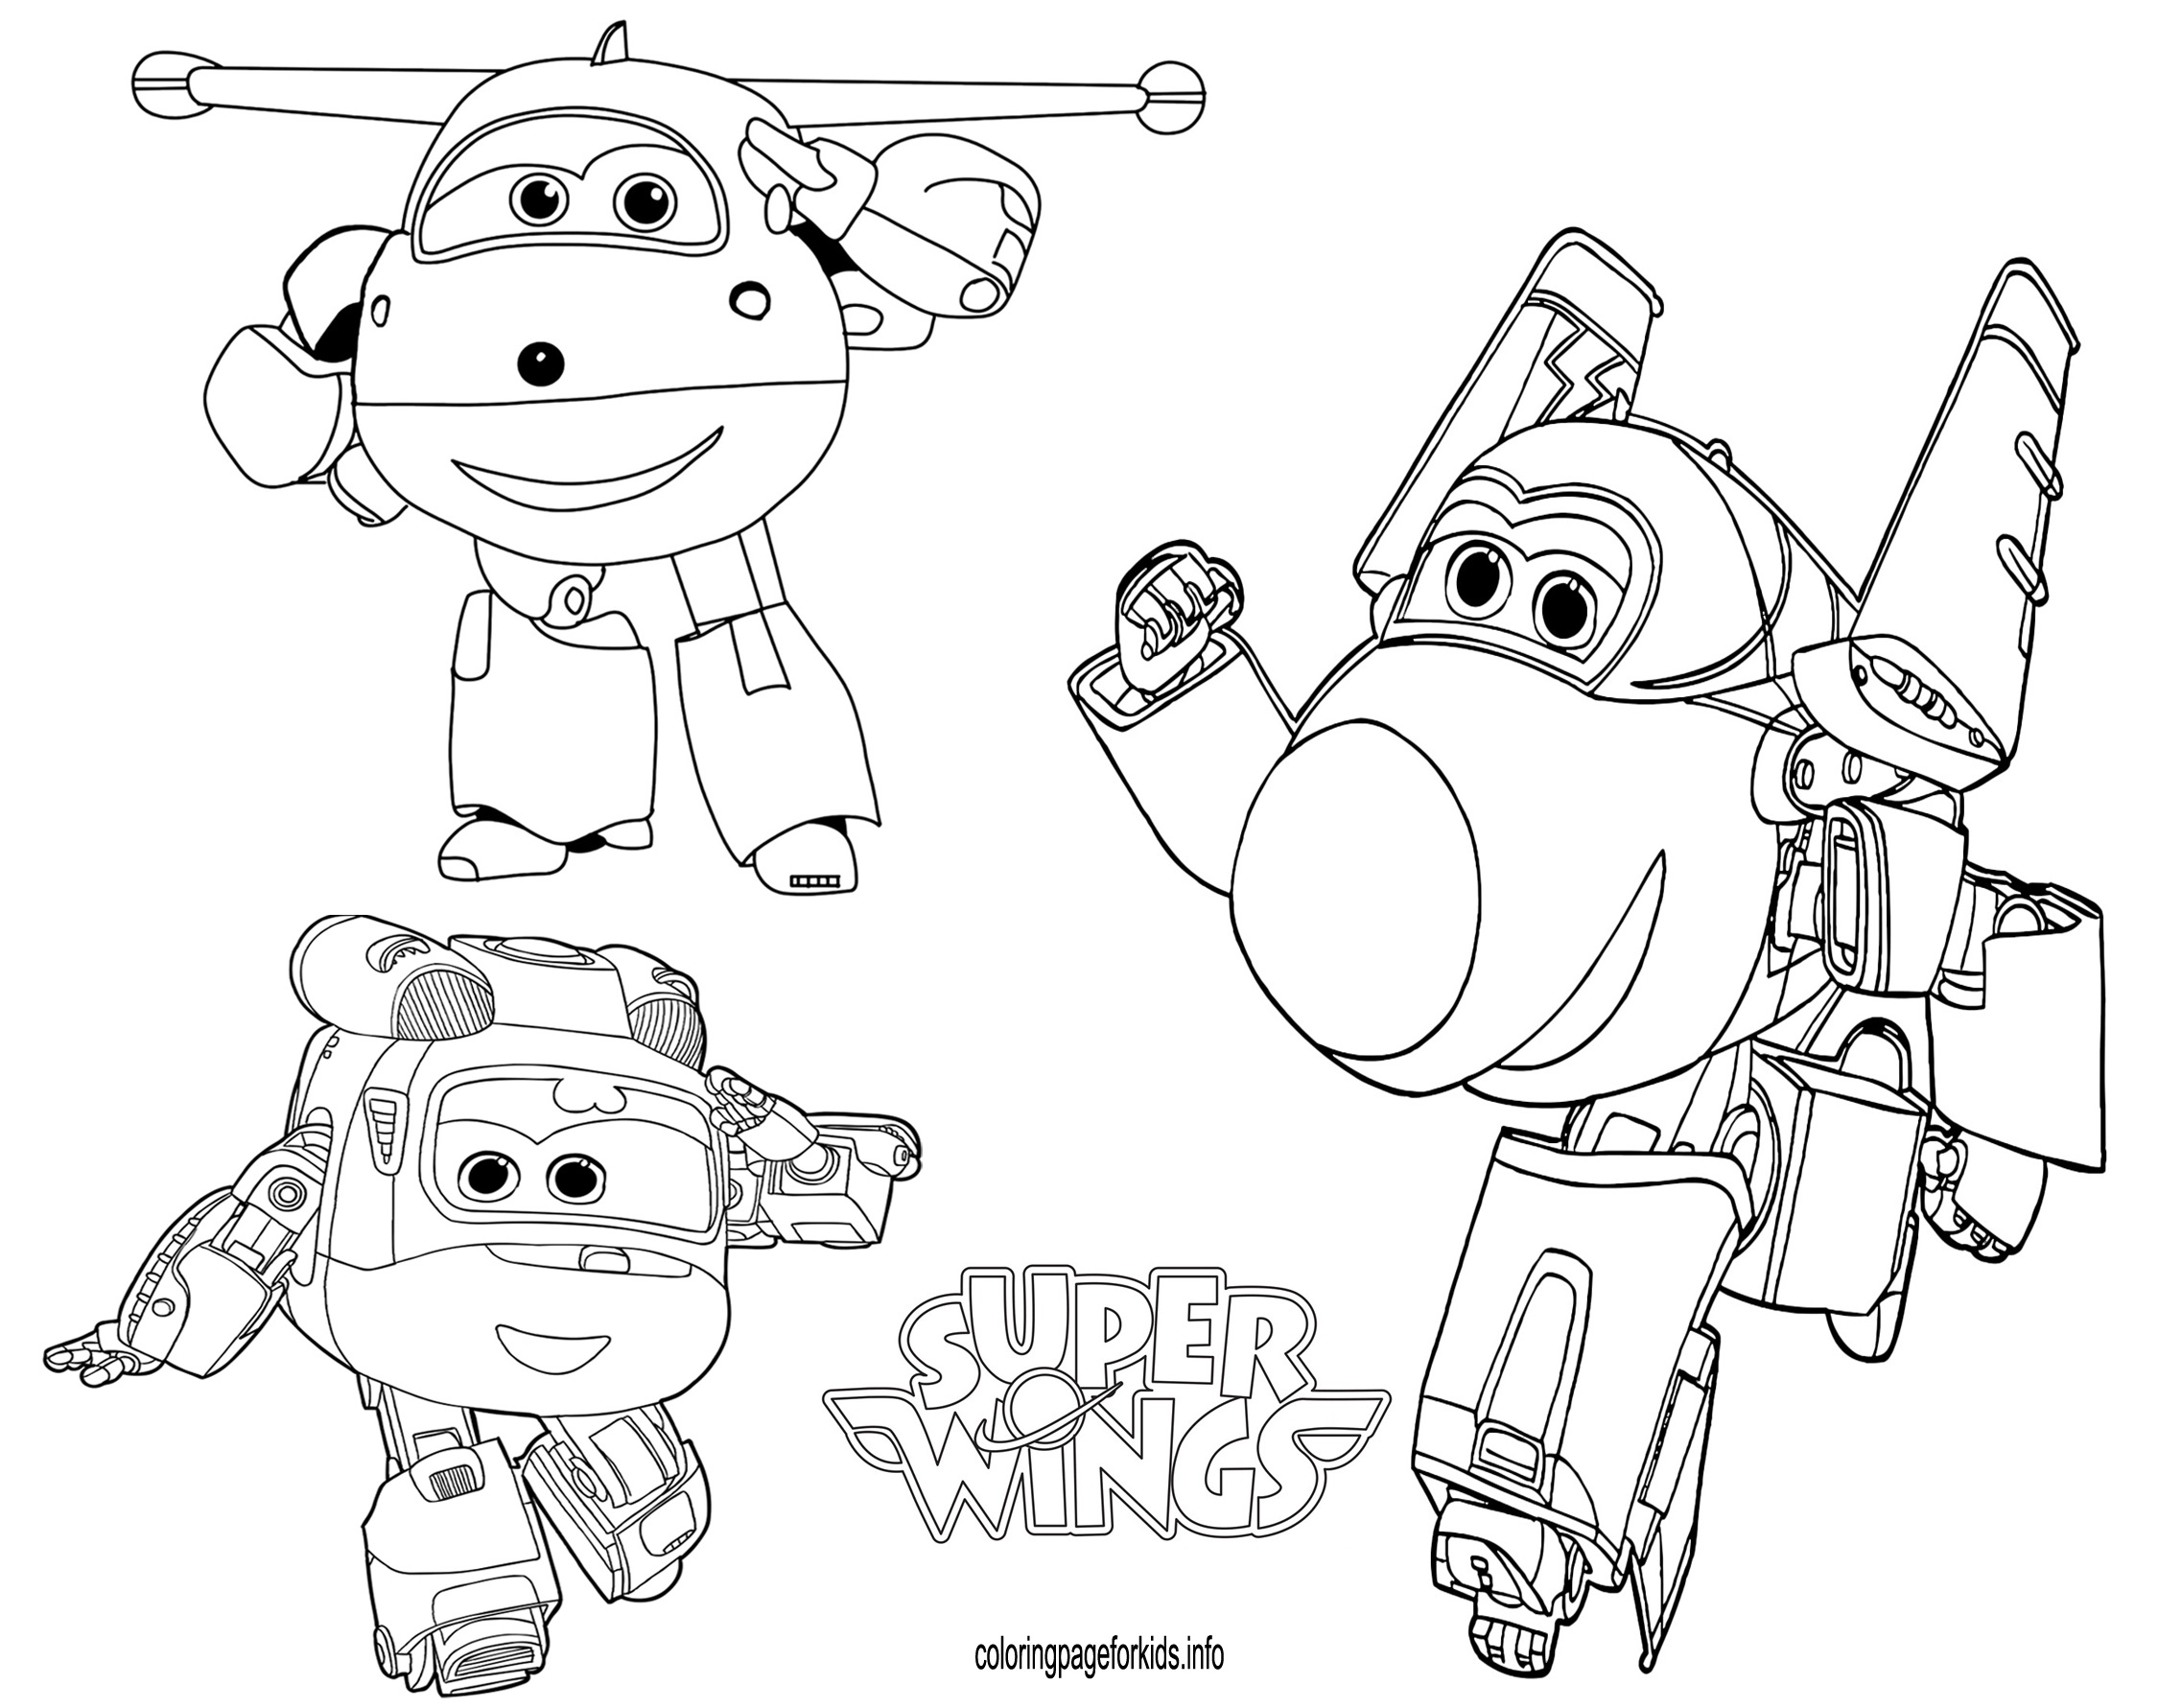 2250x1781 Super Wings Coloring Pages For Kids Printable